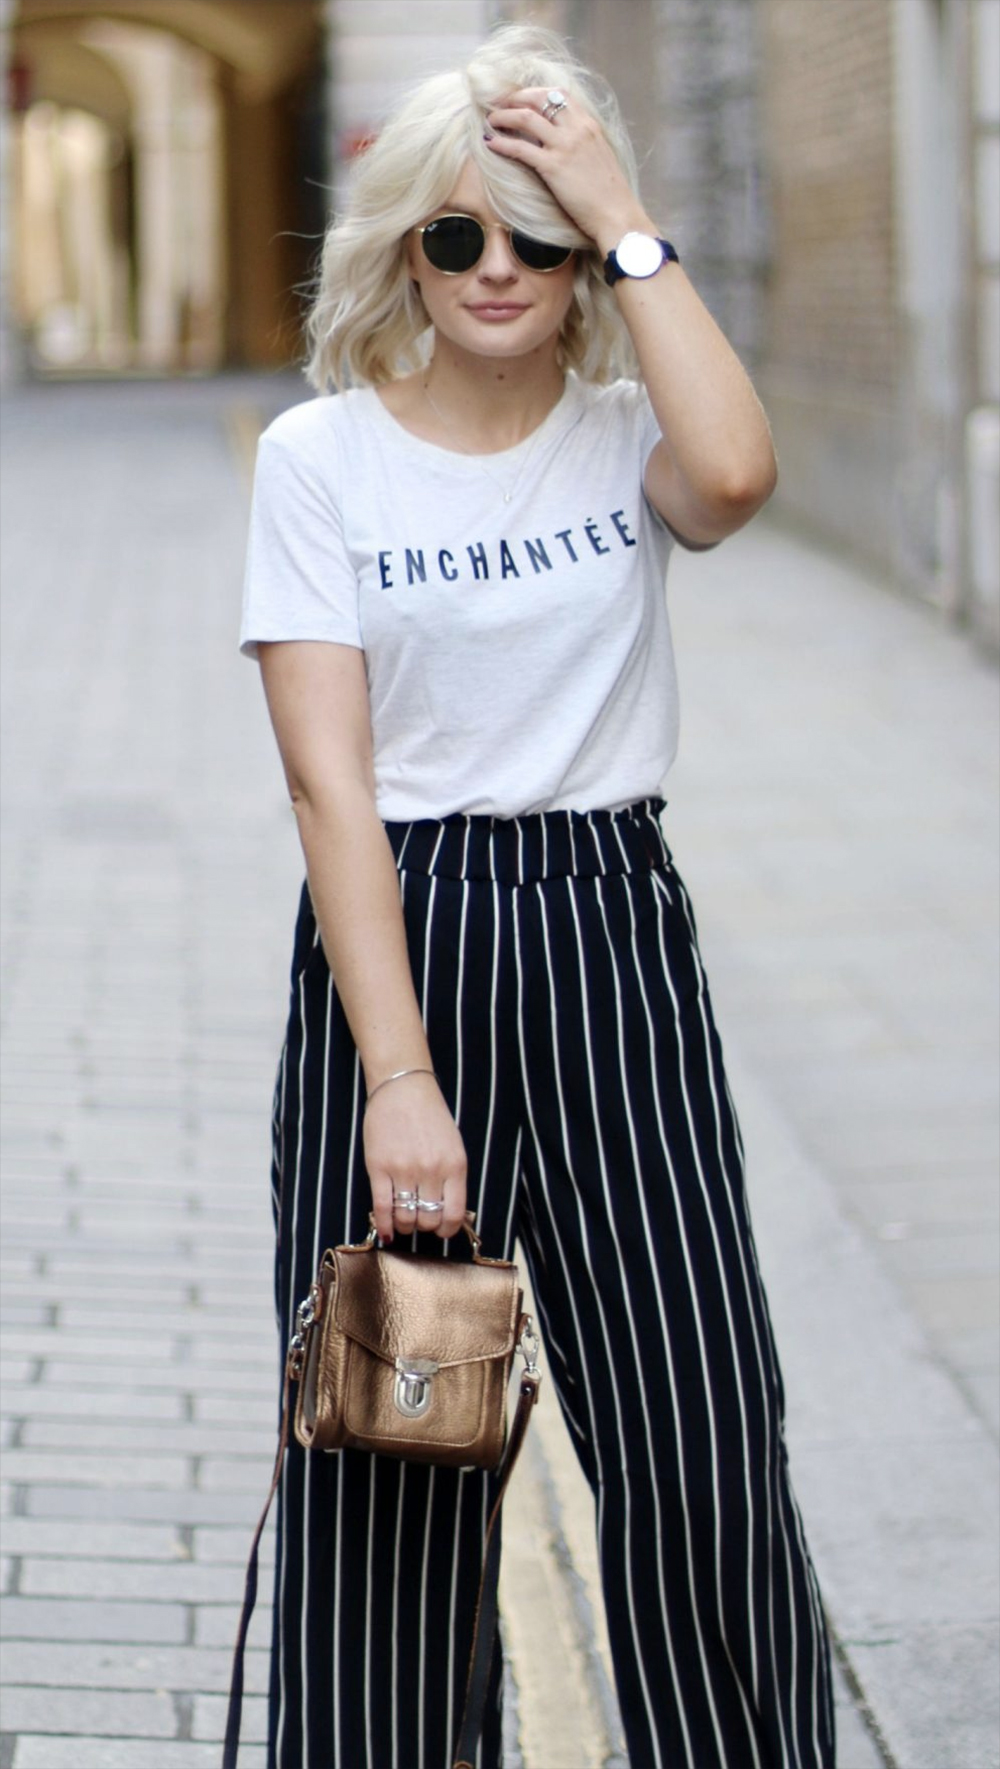 enchantee t shirt